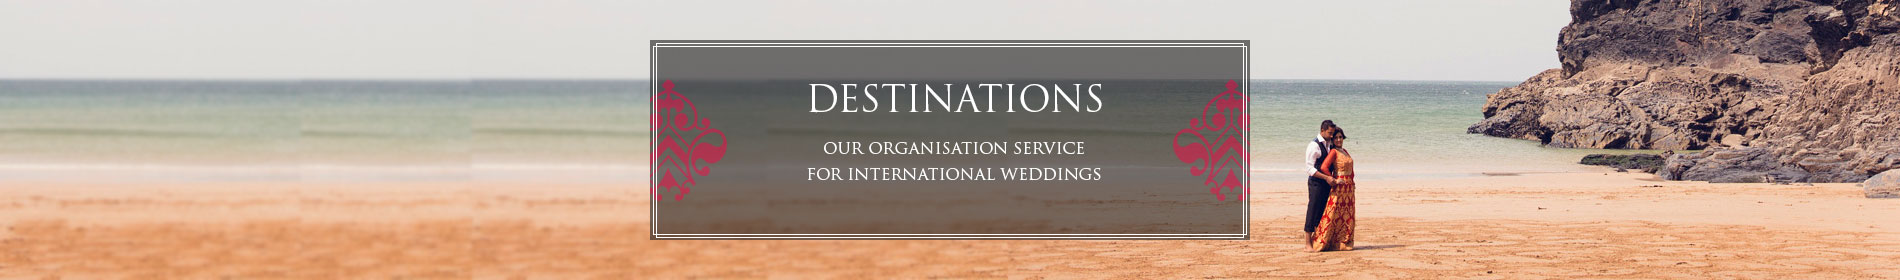 Asian Wedding Destinations